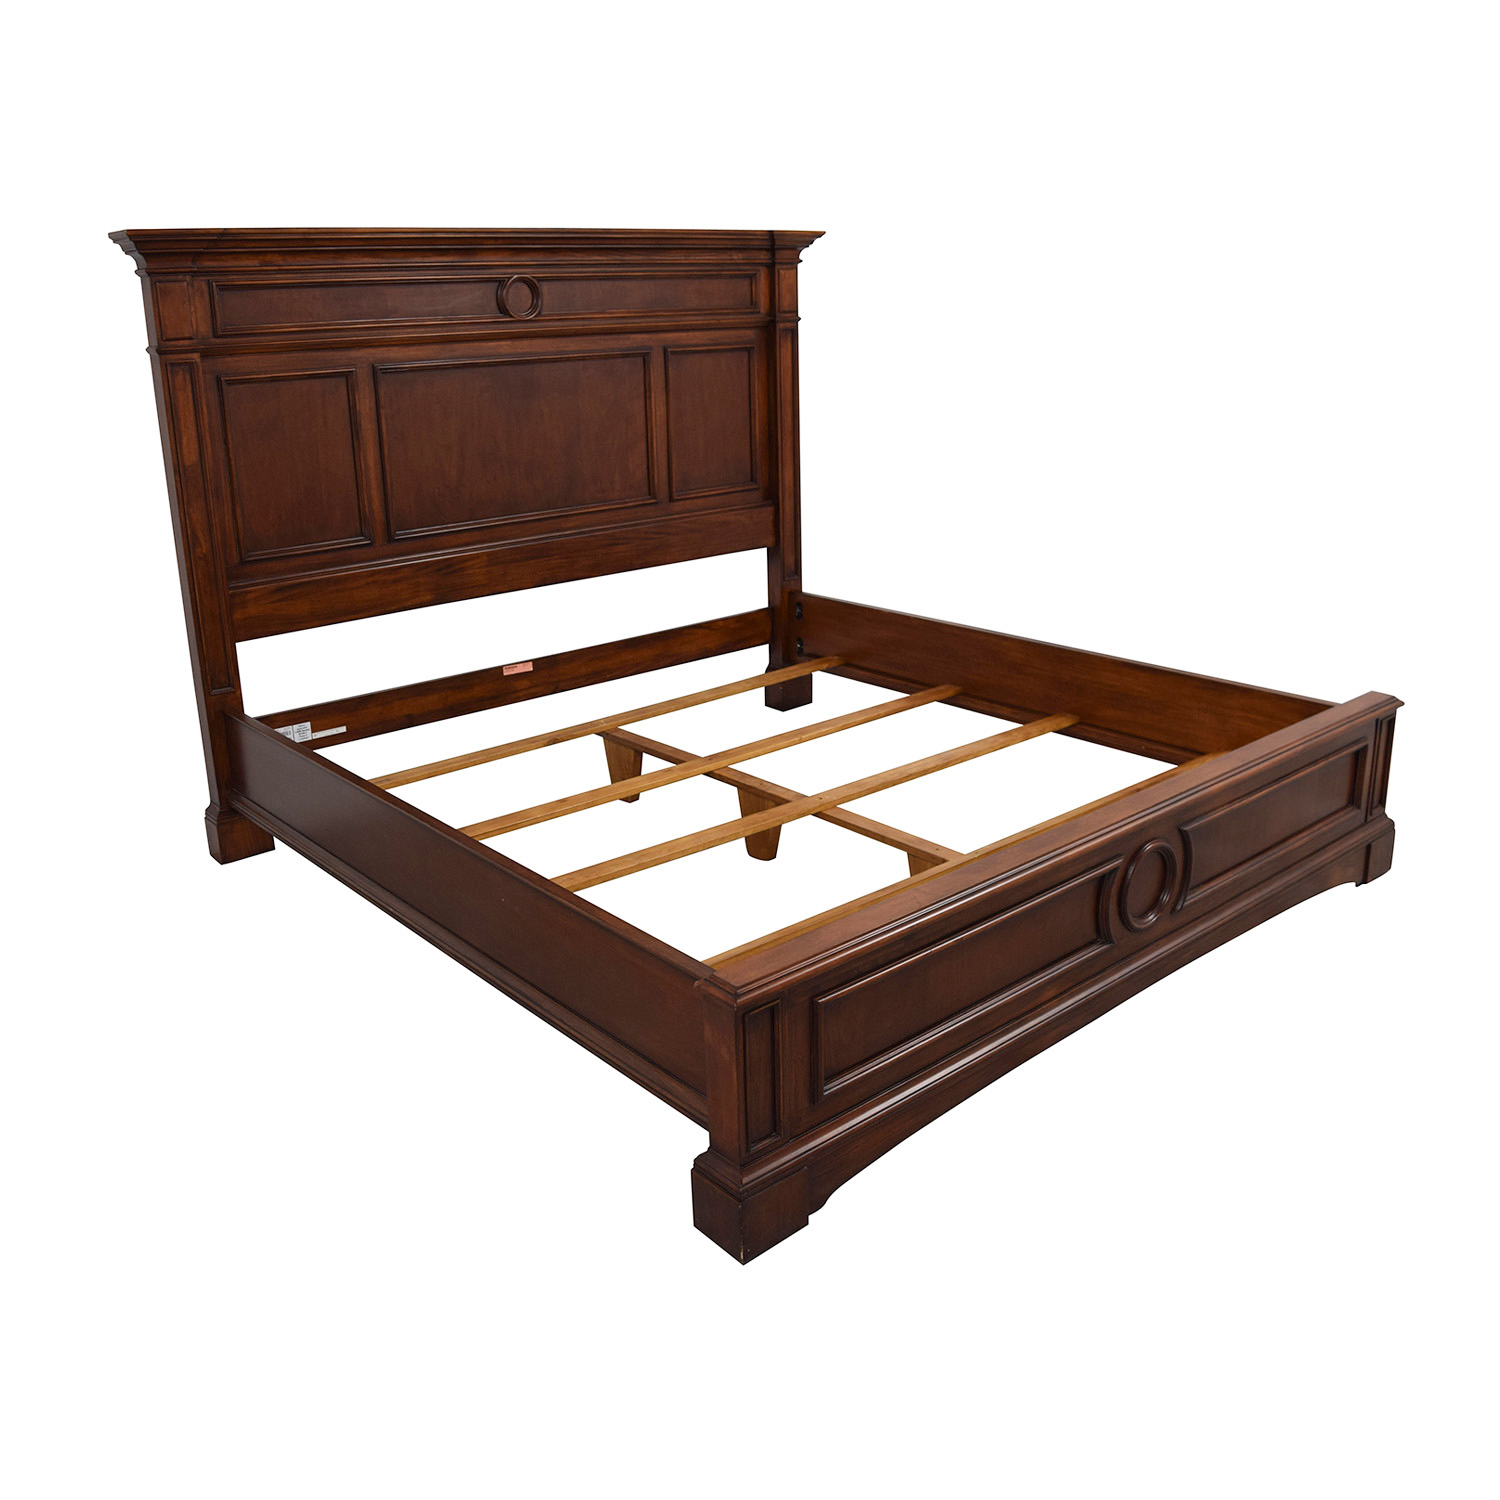 84 Off Ethan Allen Ethan Allen California King Bed Beds